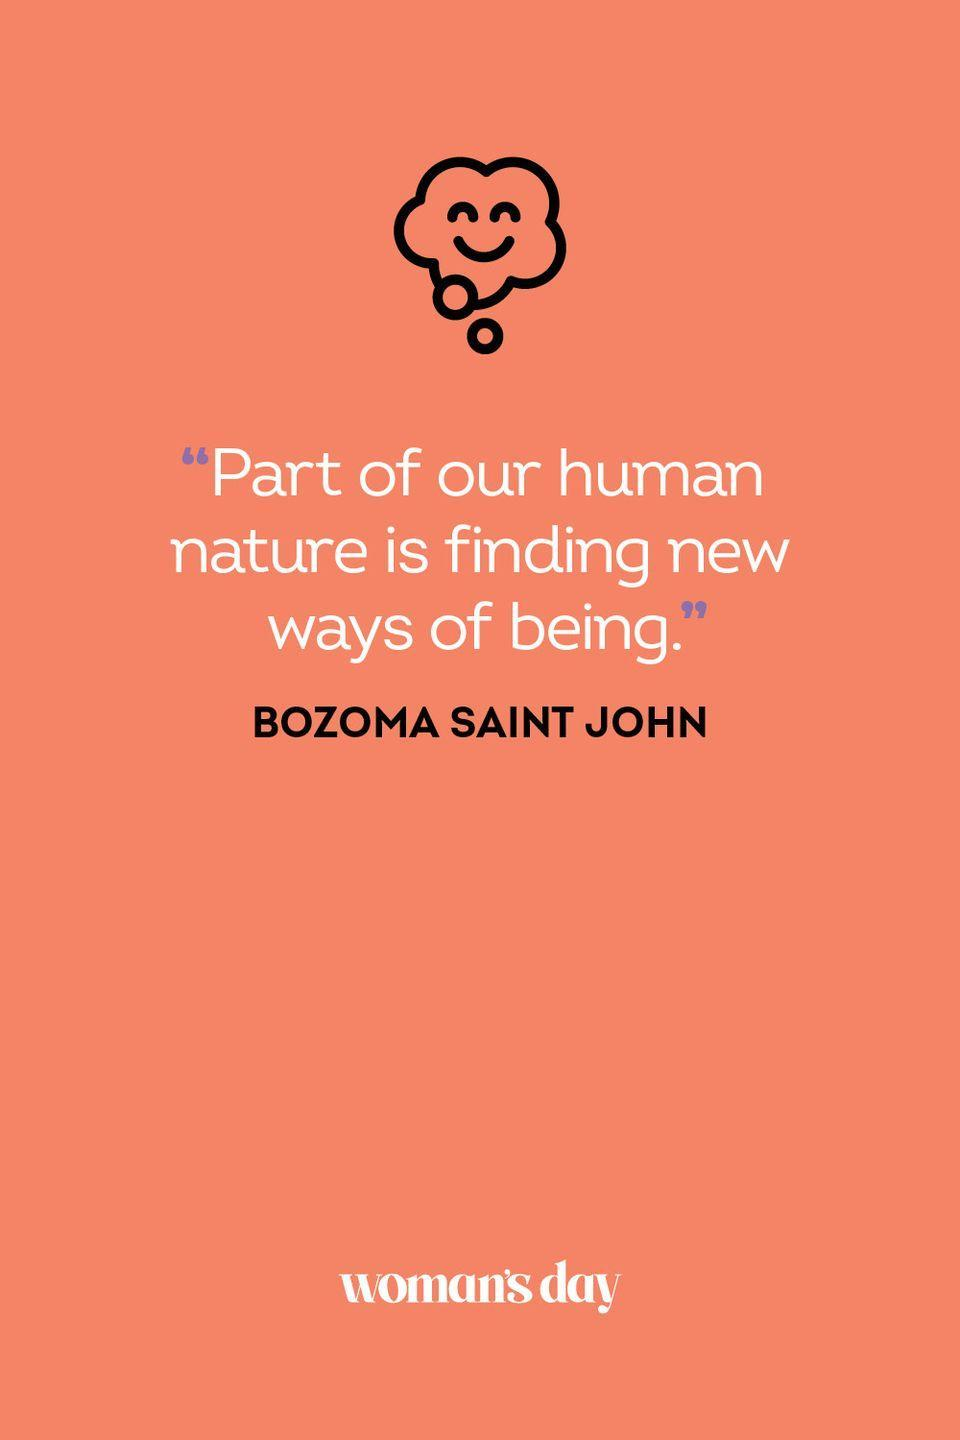 <p>Part of our human nature is finding new ways of being.</p>